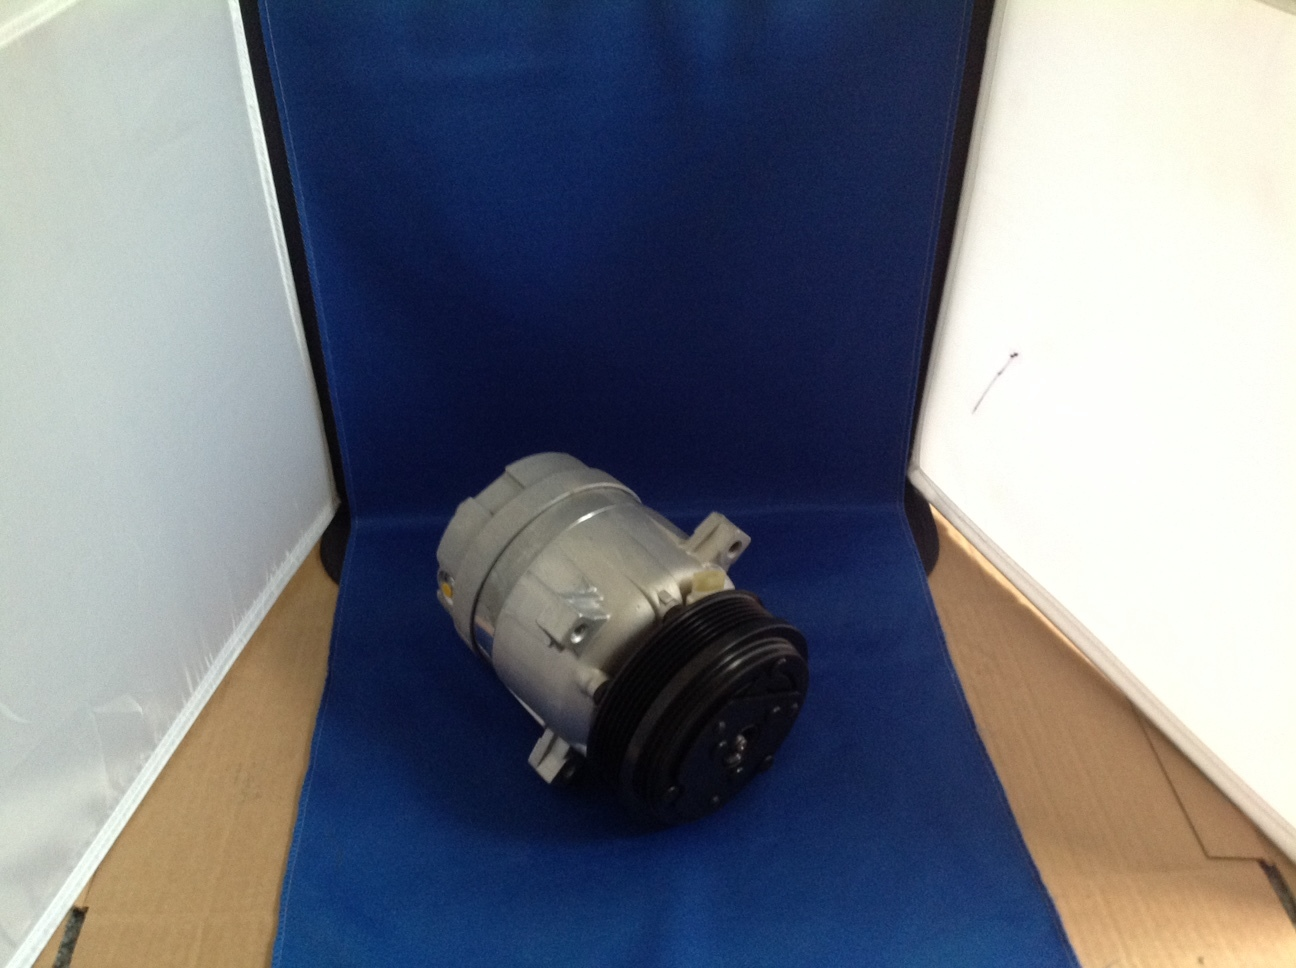 99 03 chevy s10 gmc sonoma 2.2 pickup truck ac air conditioning compressor with clutch